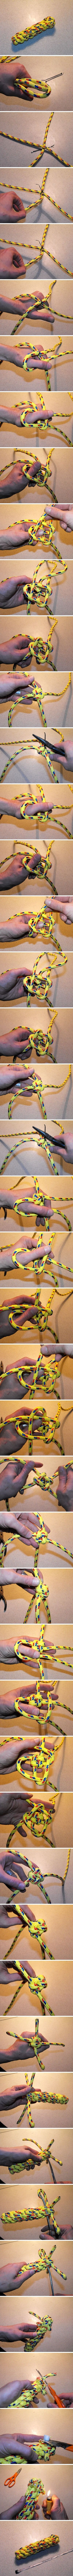 how to make Dog toys for heavy chewers step by step DIY tutorial instructions…